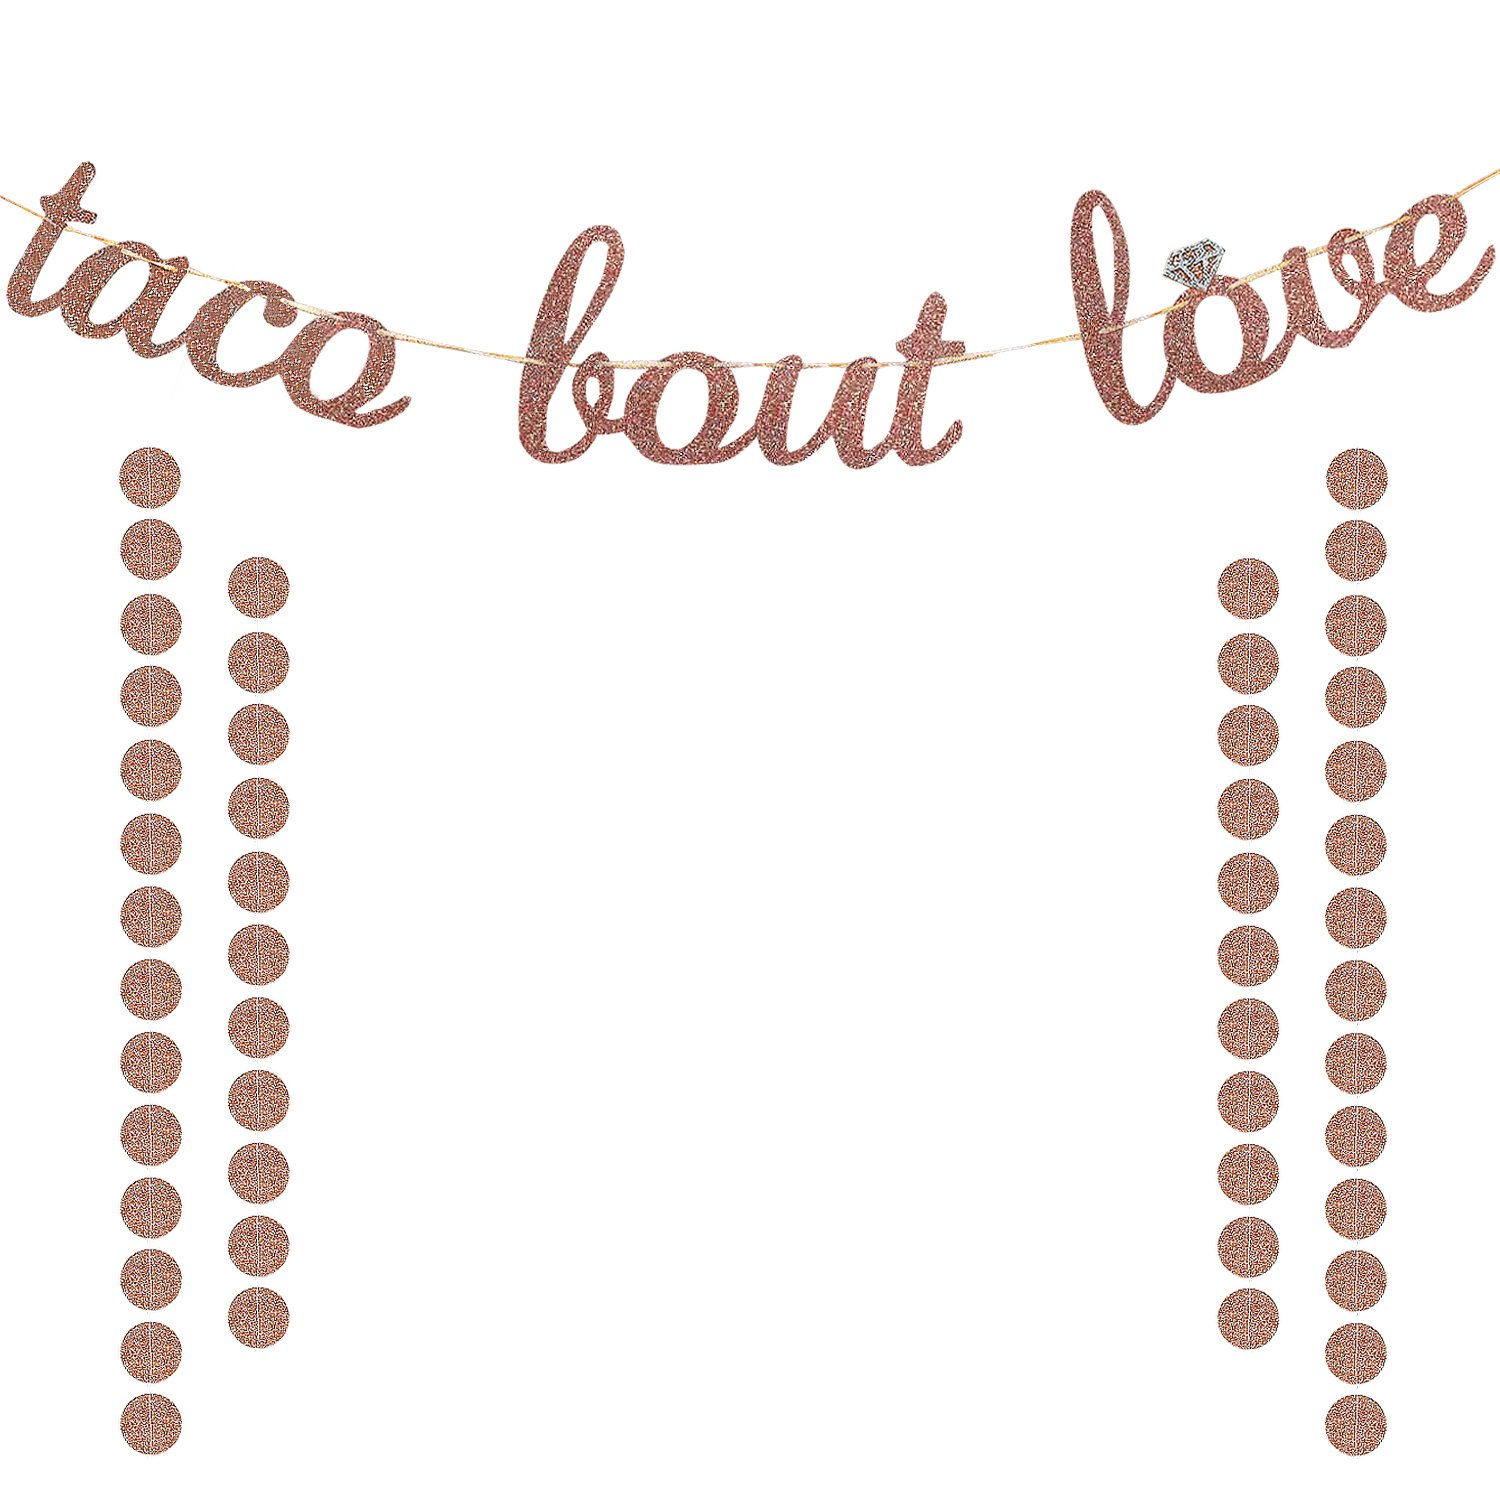 Taco Bout Love Banner Rose Gold Glittery | Mexican Fiesta Themed Bridal Shower Bachelorette Wedding Party Decorations | Extra Rose Gold Glittery Circle Dots Garland (50pcs Circle Dots)